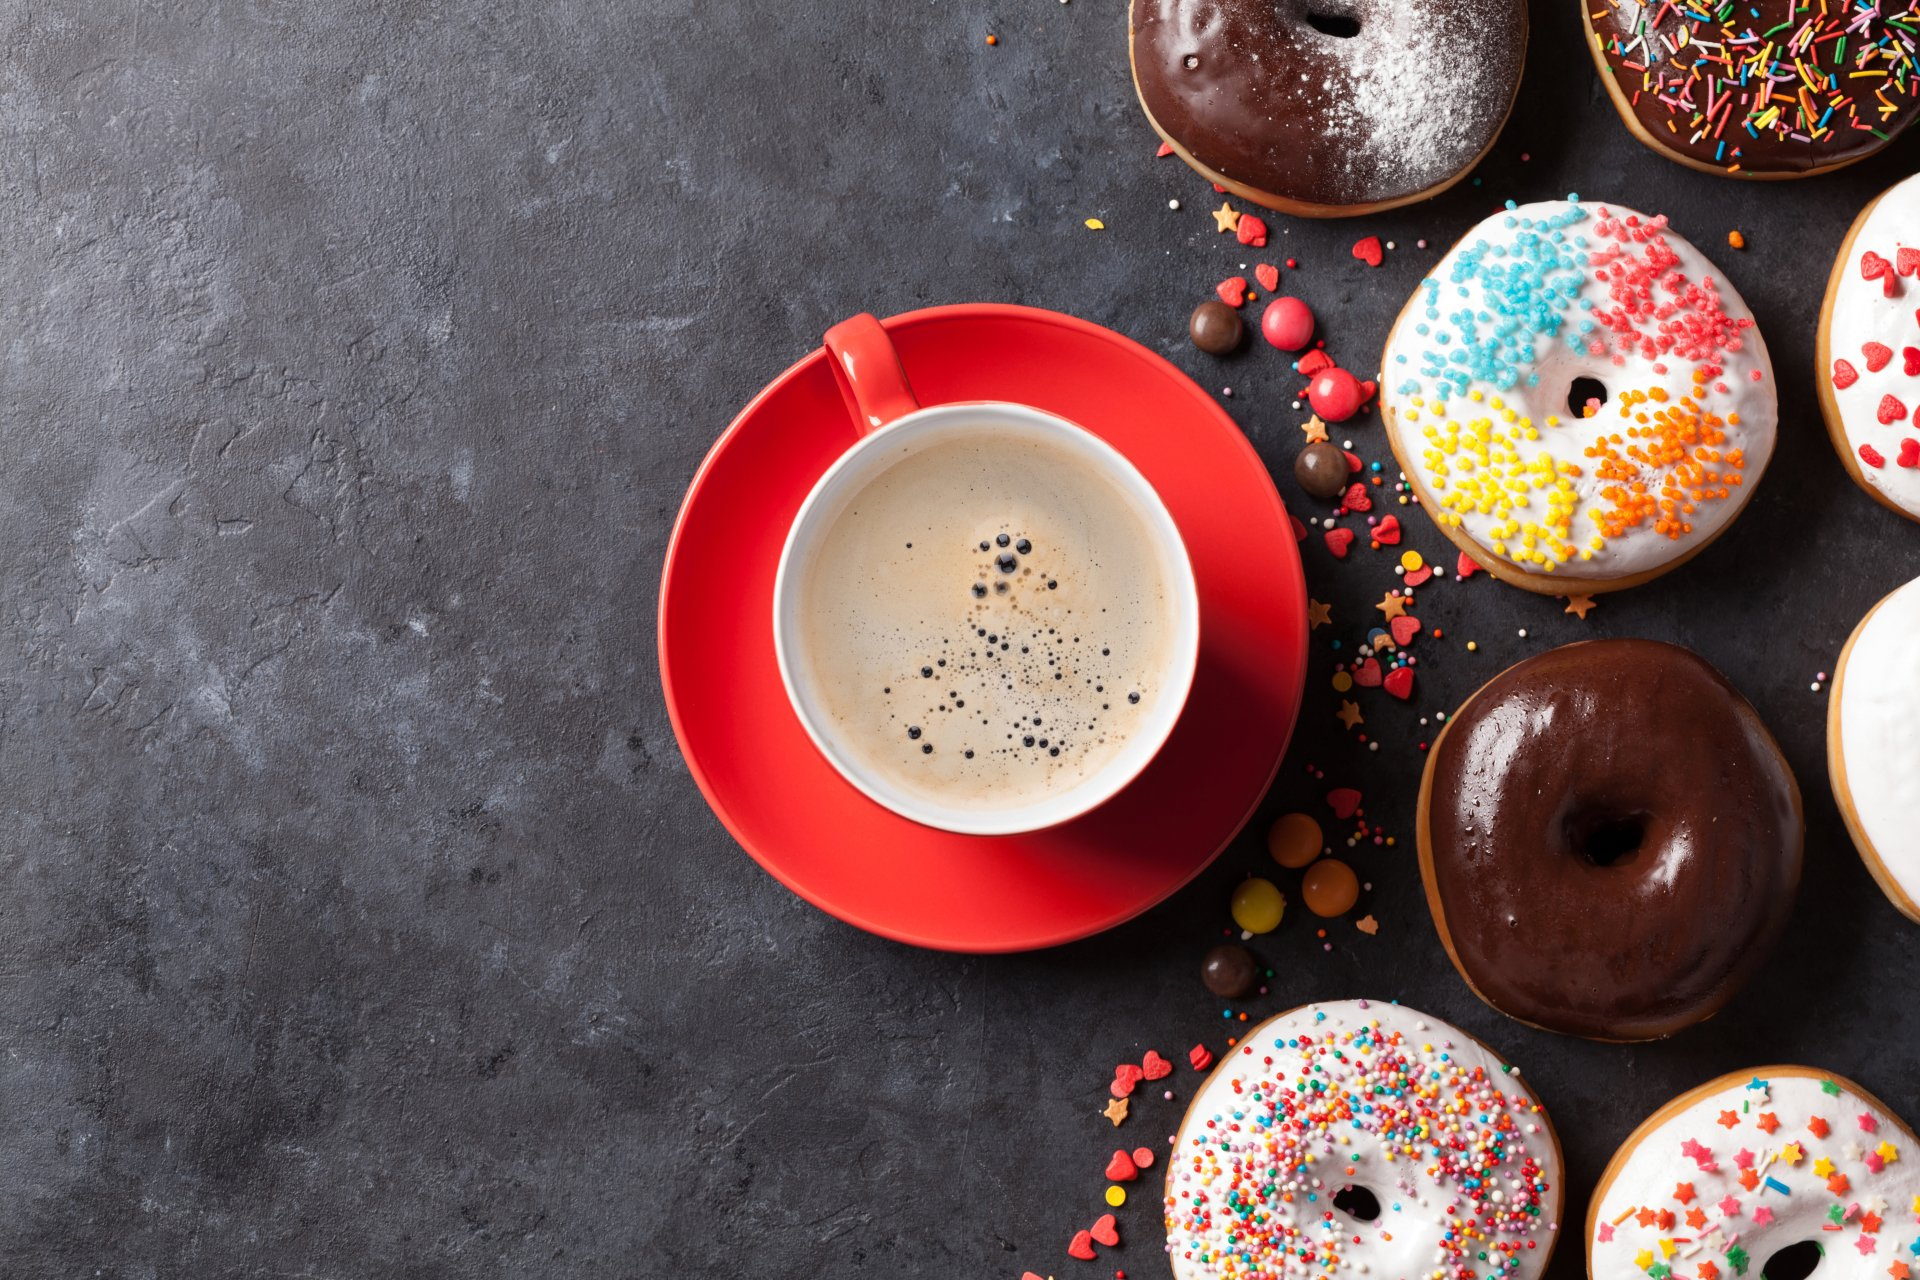 Food - Doughnut  Coffee Cup Sweets Still Life Wallpaper